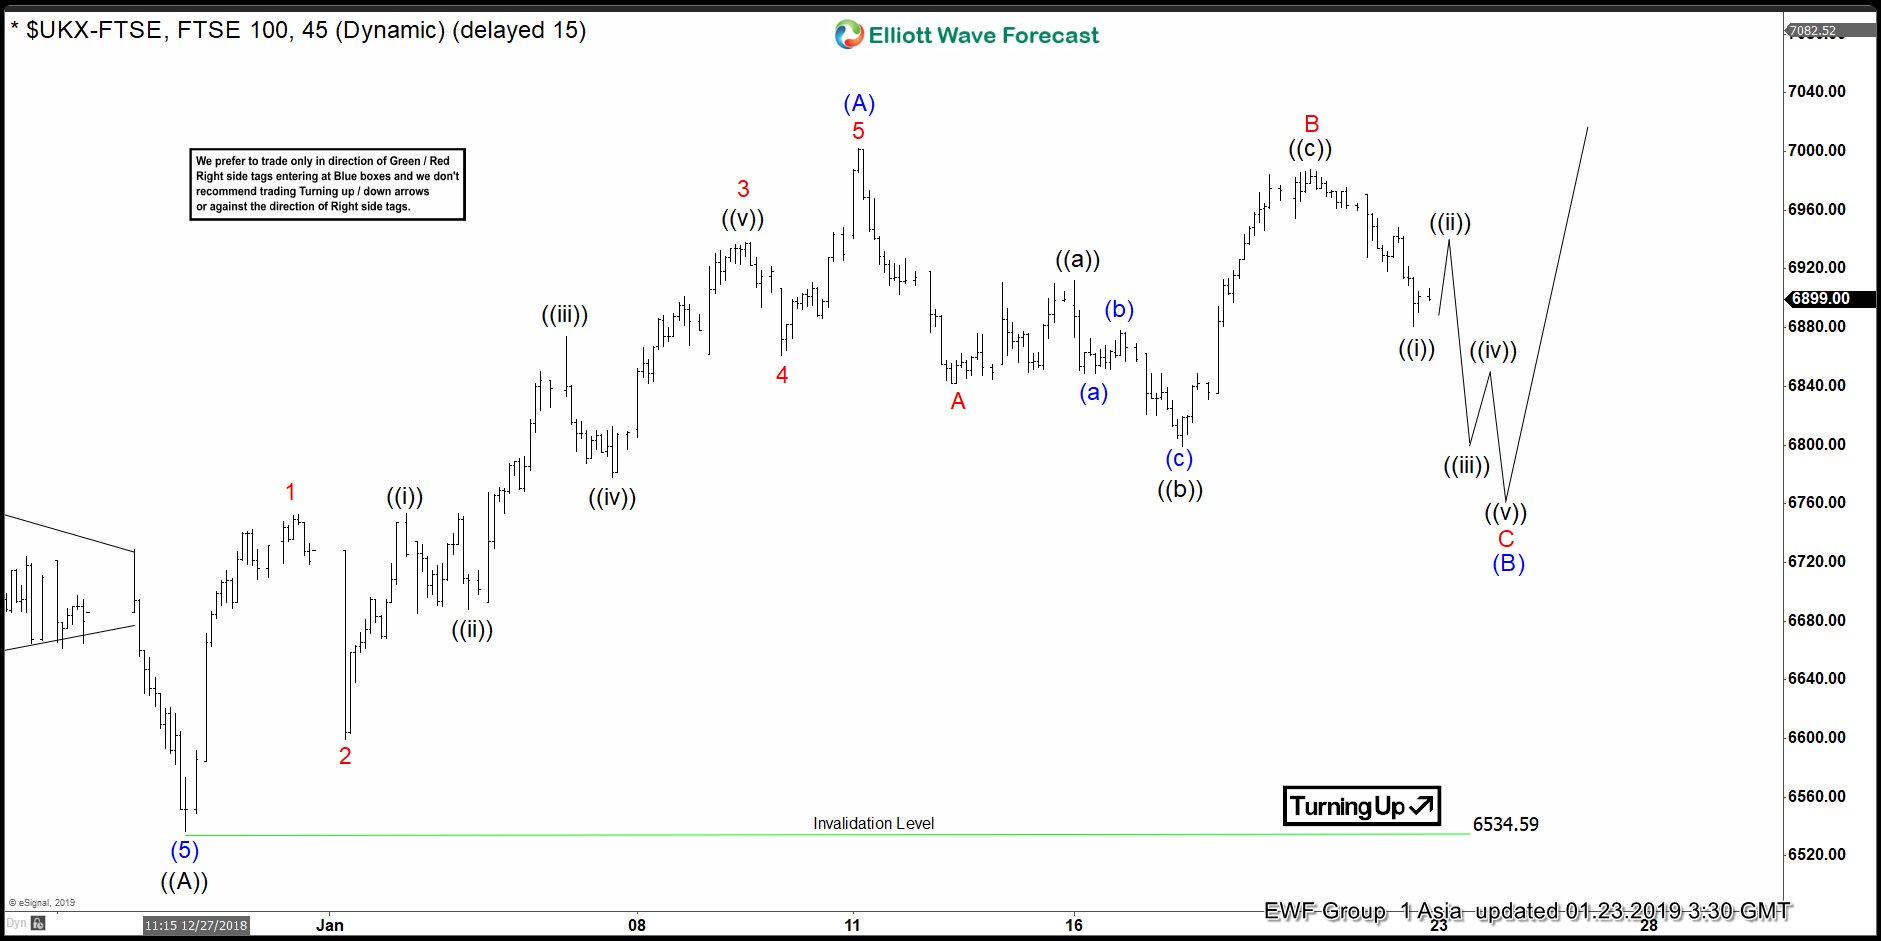 FTSE Elliott Wave View Calling for More Upside